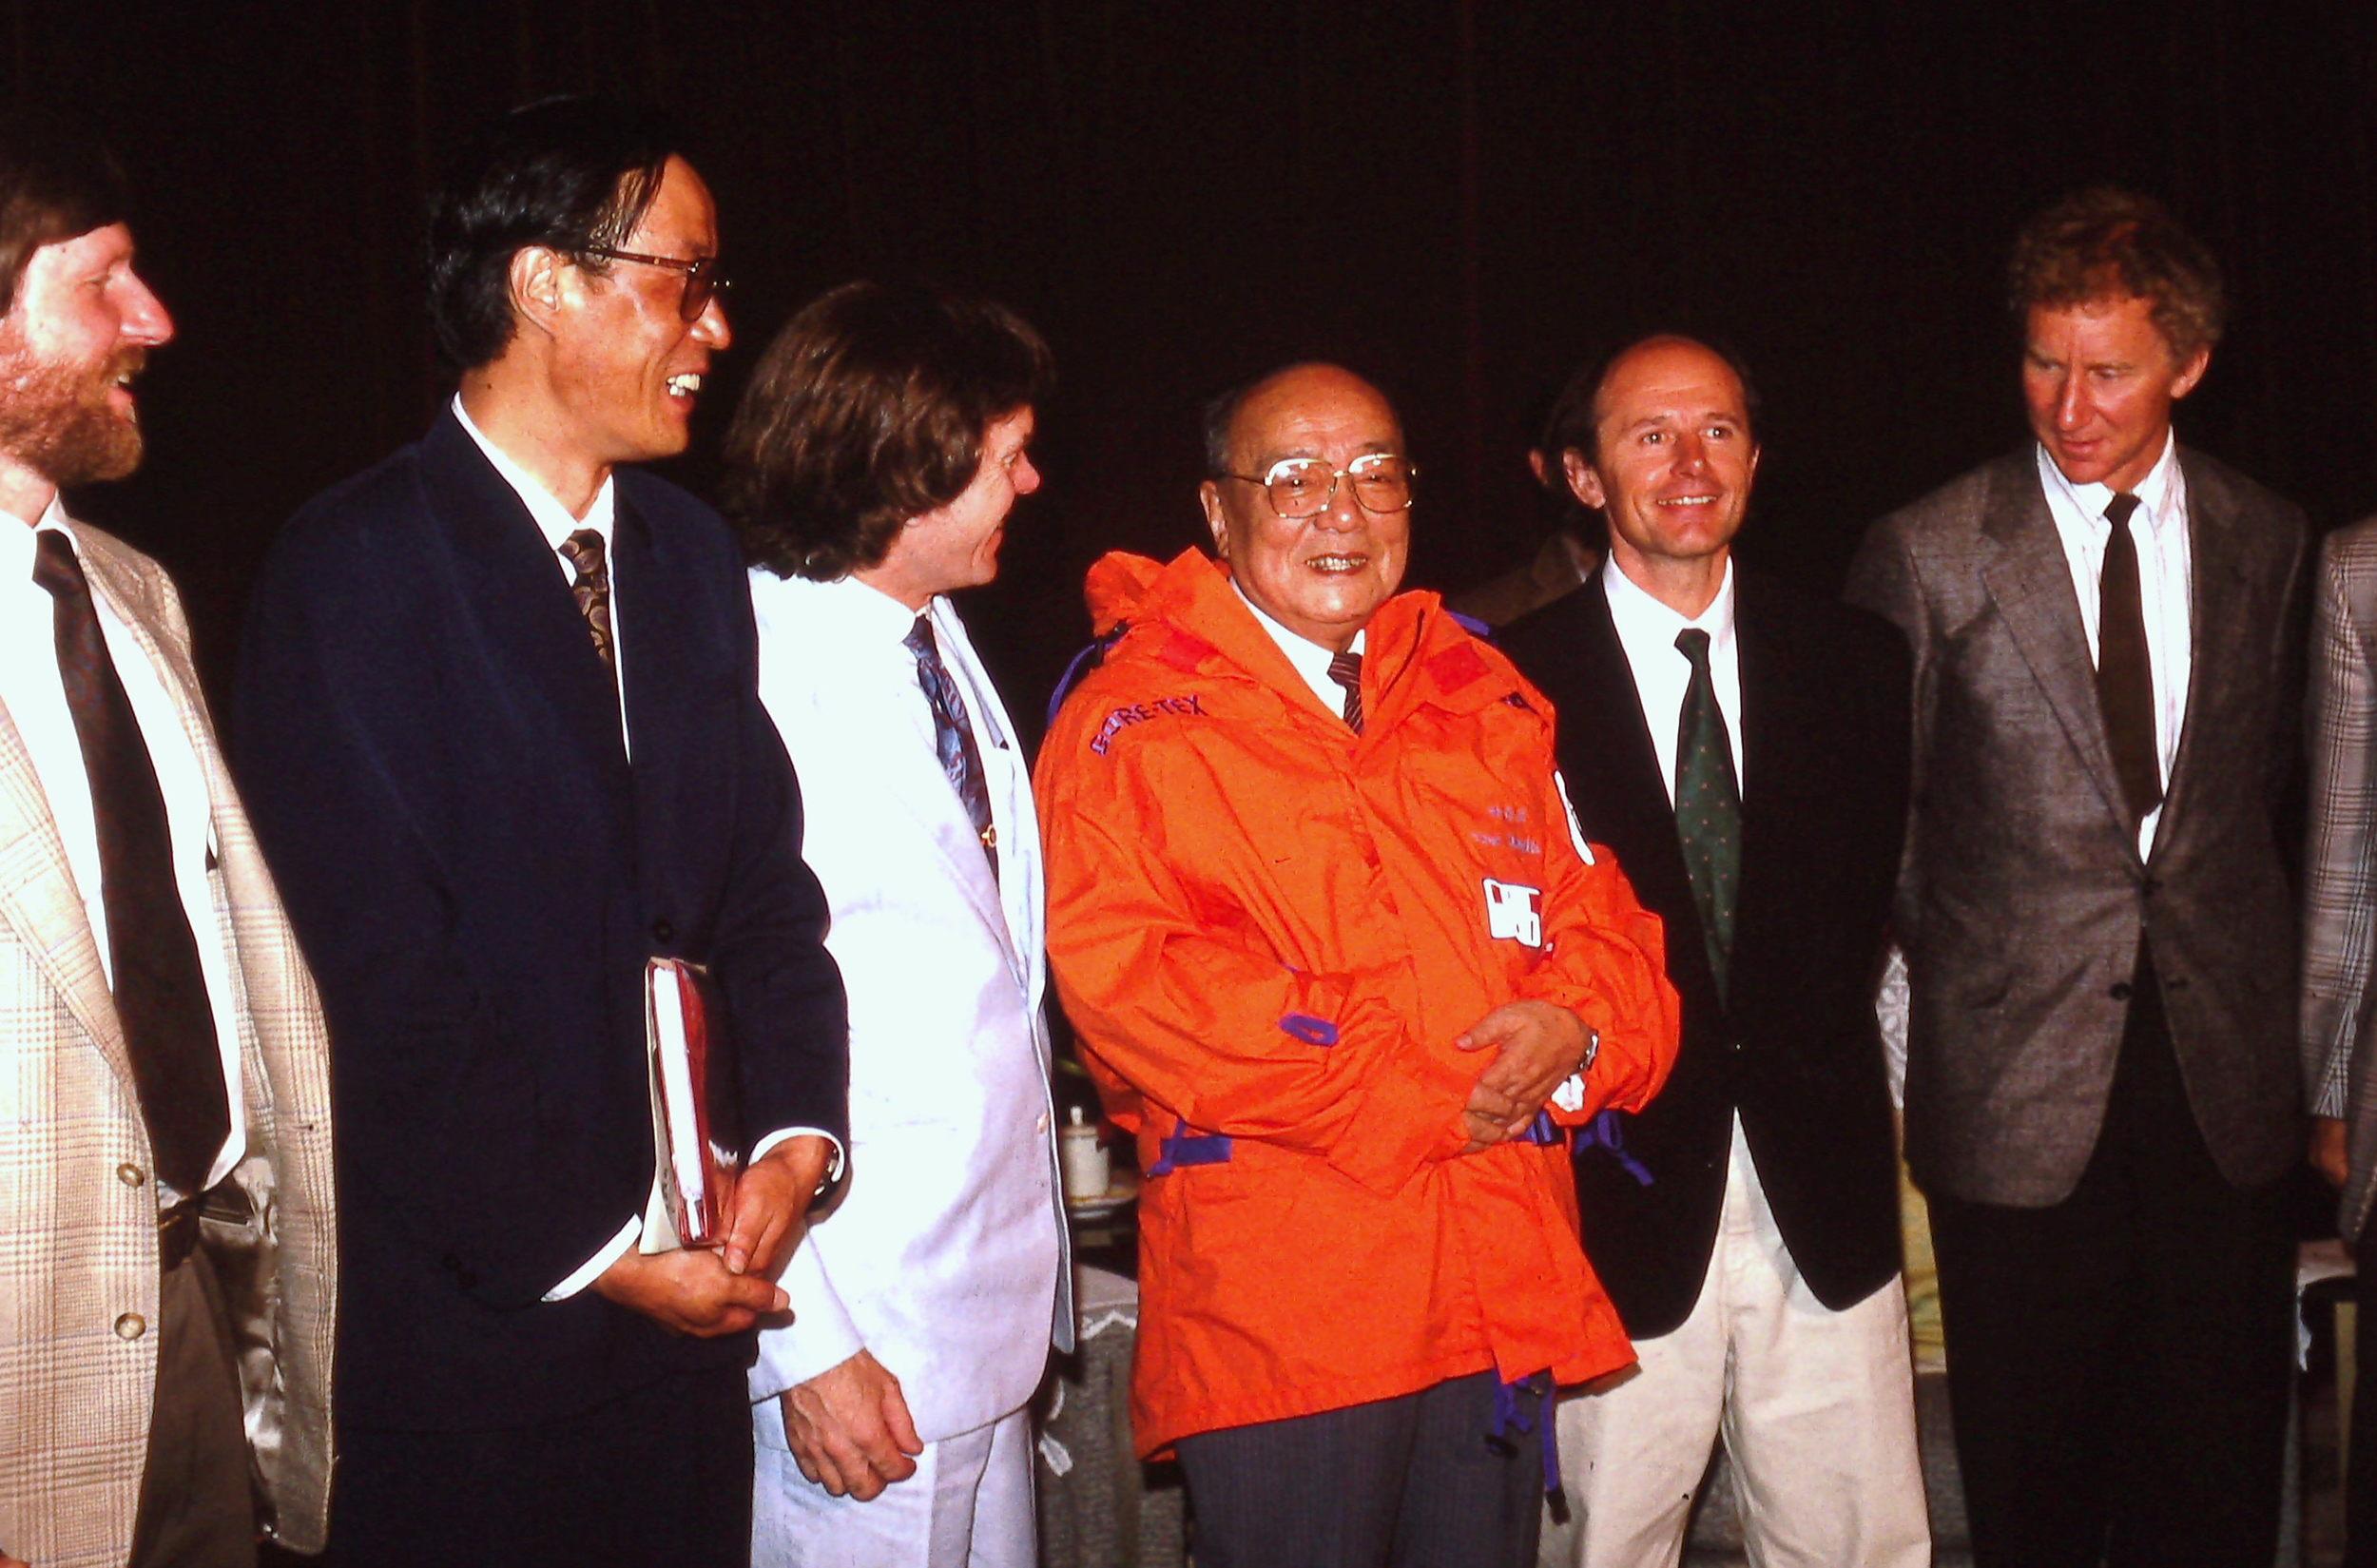 People's Republic of China President Yang Shangkun tries on his Trans-Antarctica jacket. May 1990. Photo: Cynthia Mueller